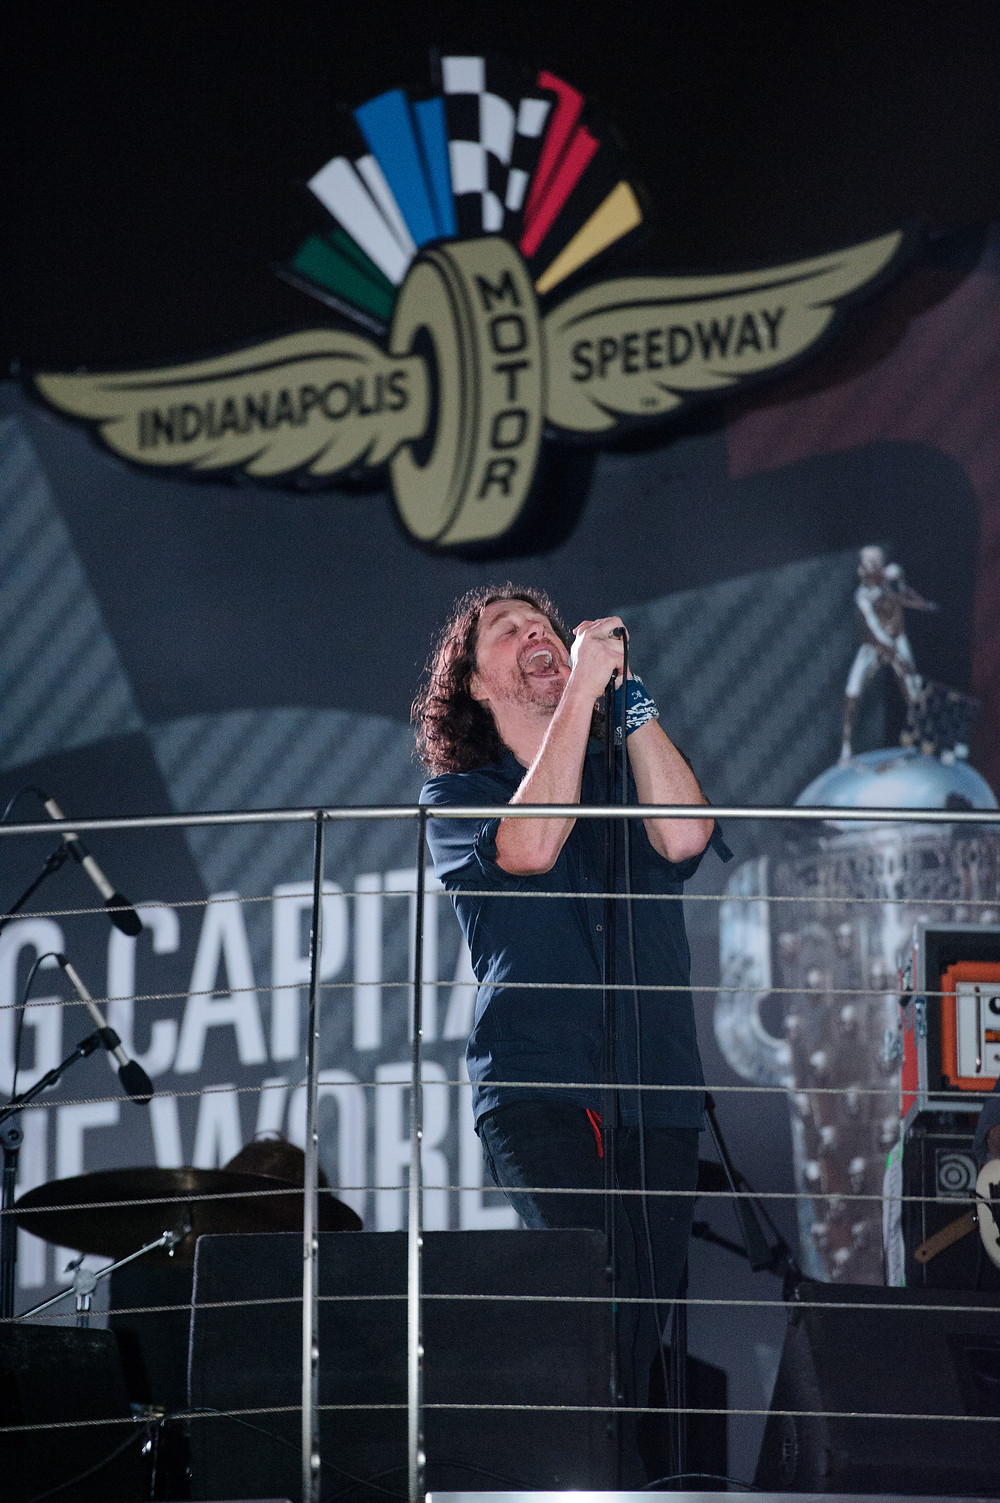 Edisun performs at the Indianapolis Motor Speedway for the Red Bull Air Race 2016